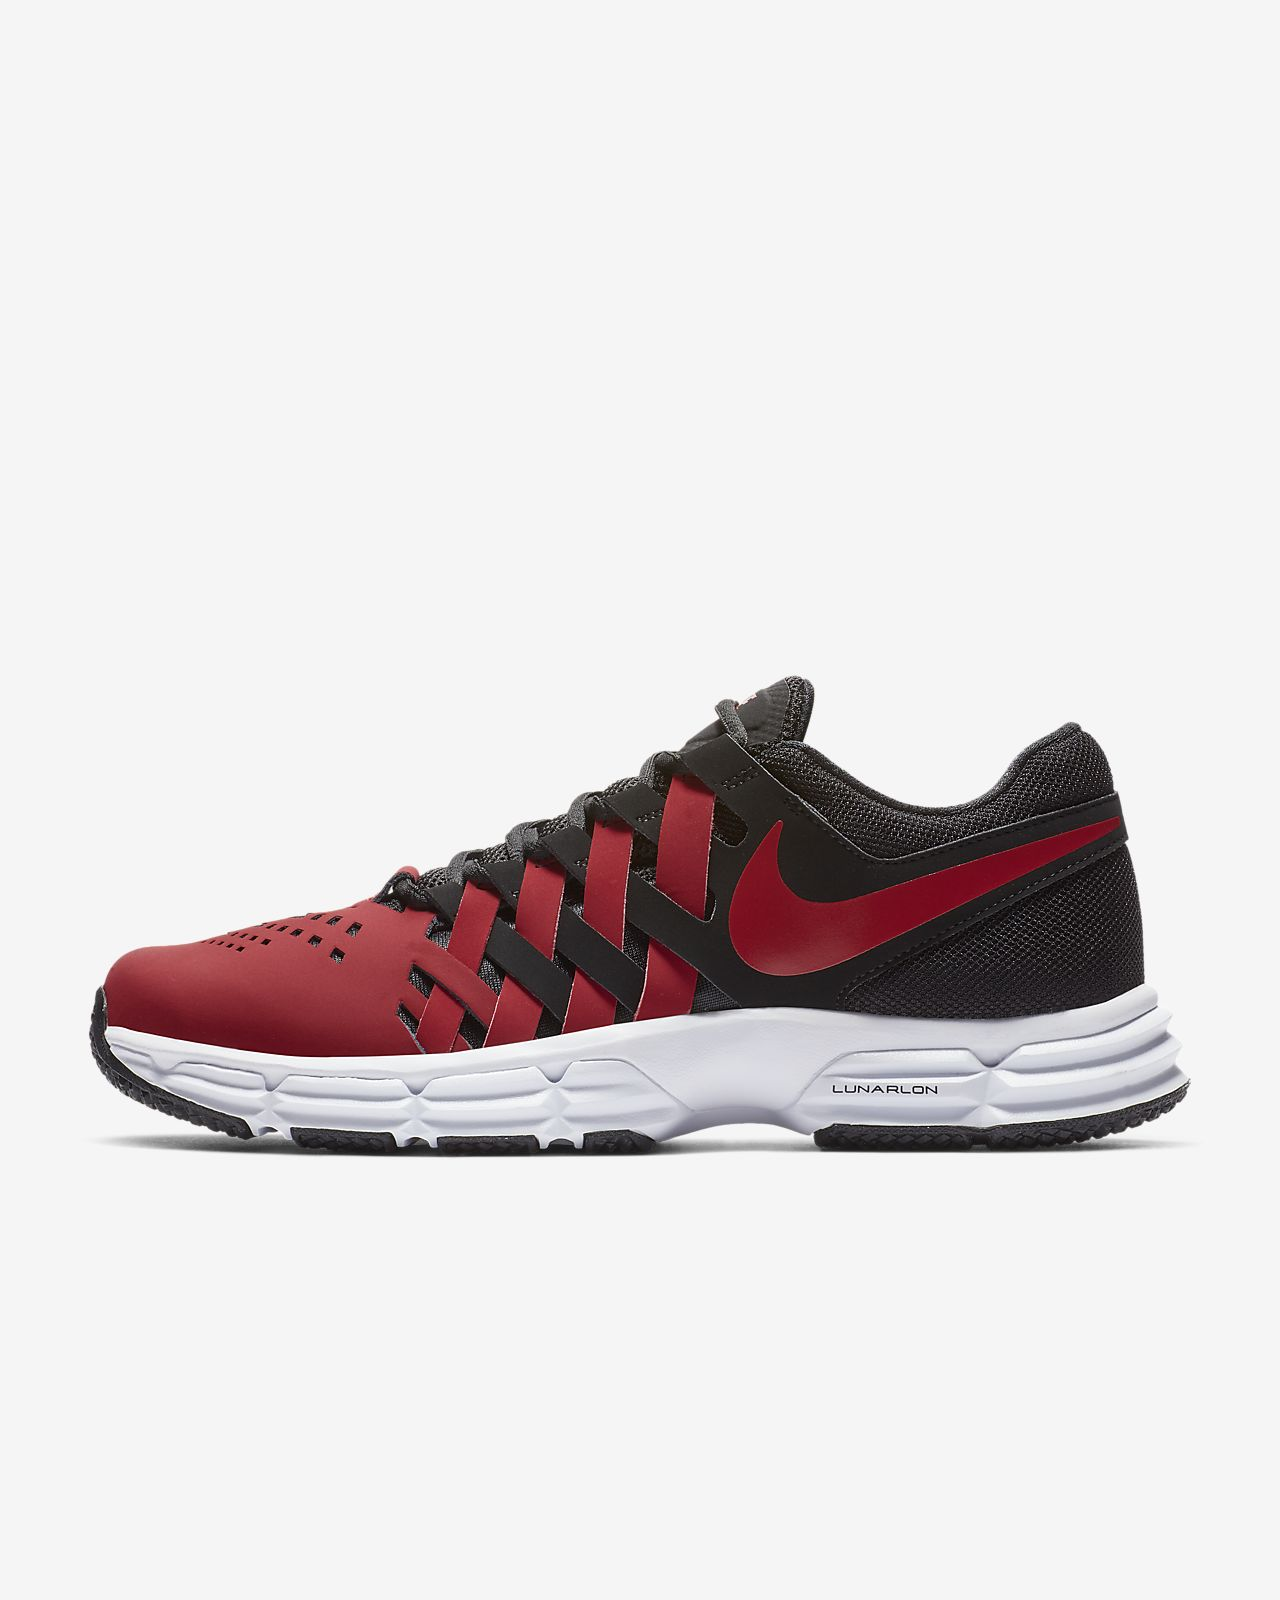 4a9170429e20 Nike Lunar Fingertrap TR Men s Gym Gameday Shoe. Nike.com